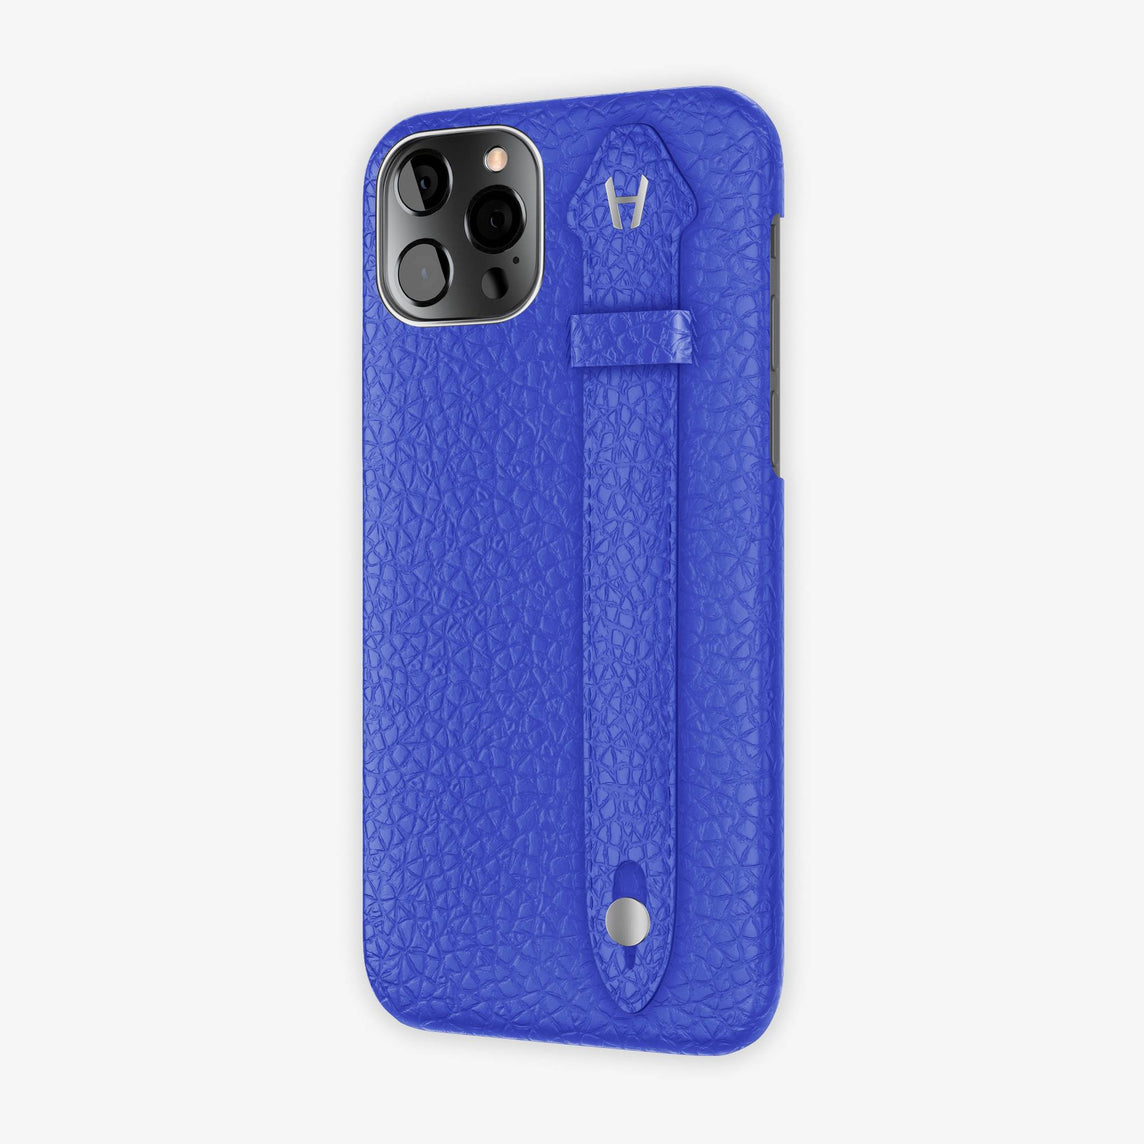 Calfskin Side Finger Case iPhone 12 Pro | Peony Blue/Peony Blue - Stainless Steel